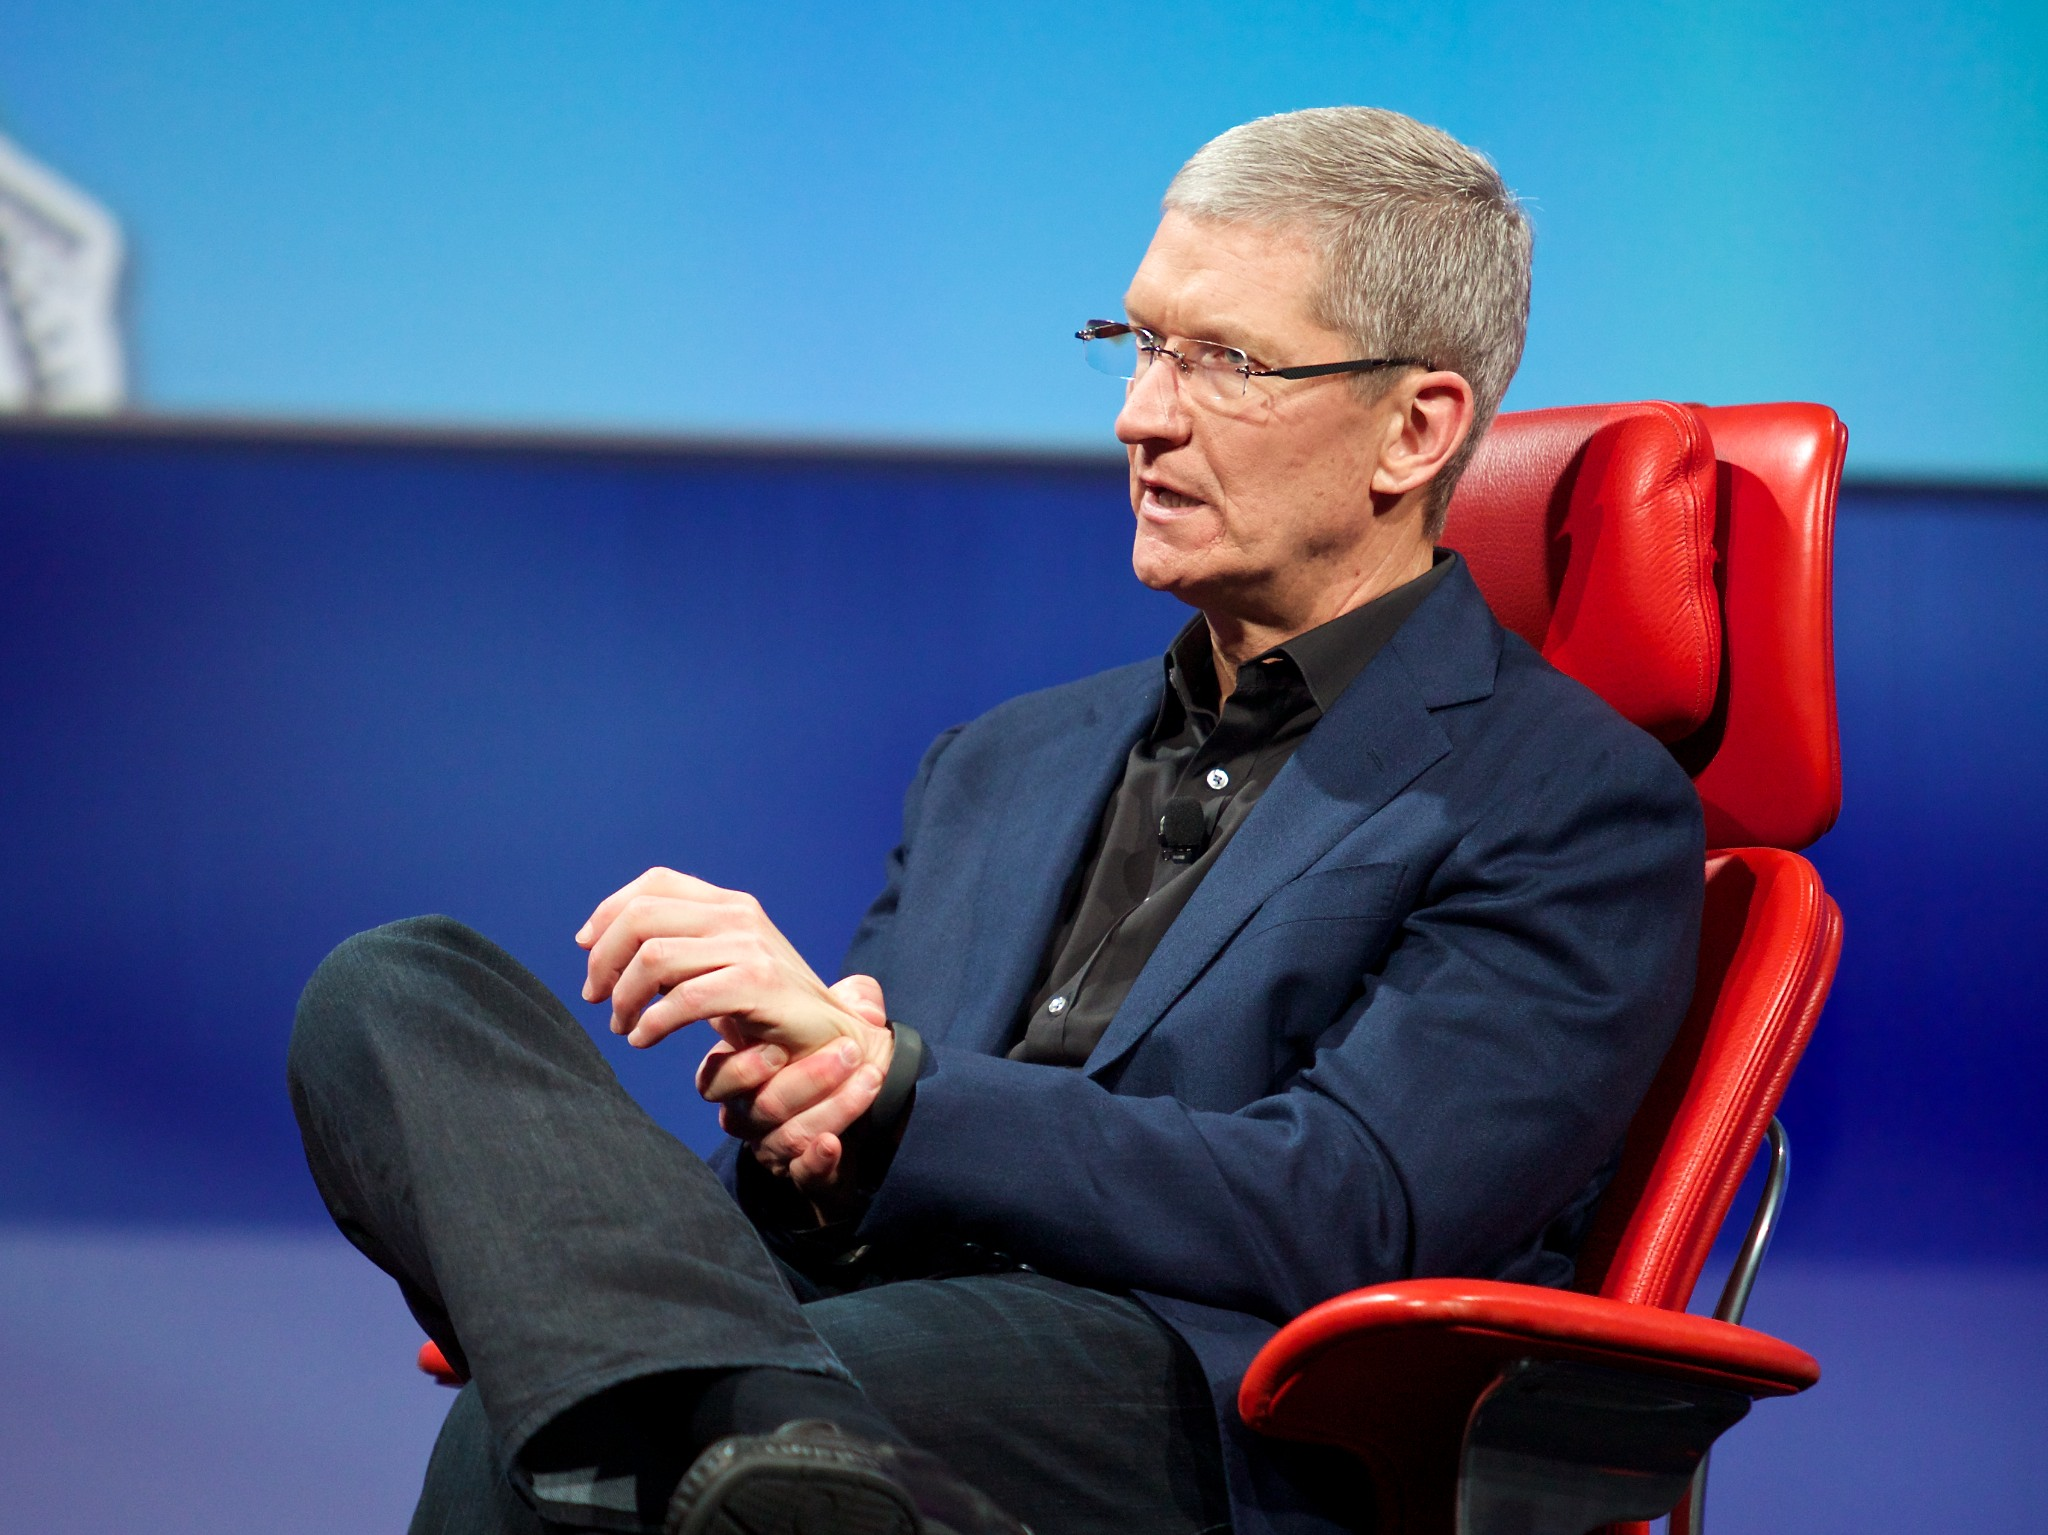 Apple CEO Tim Cook Joins Twitter, Tweets About iPhone Launch